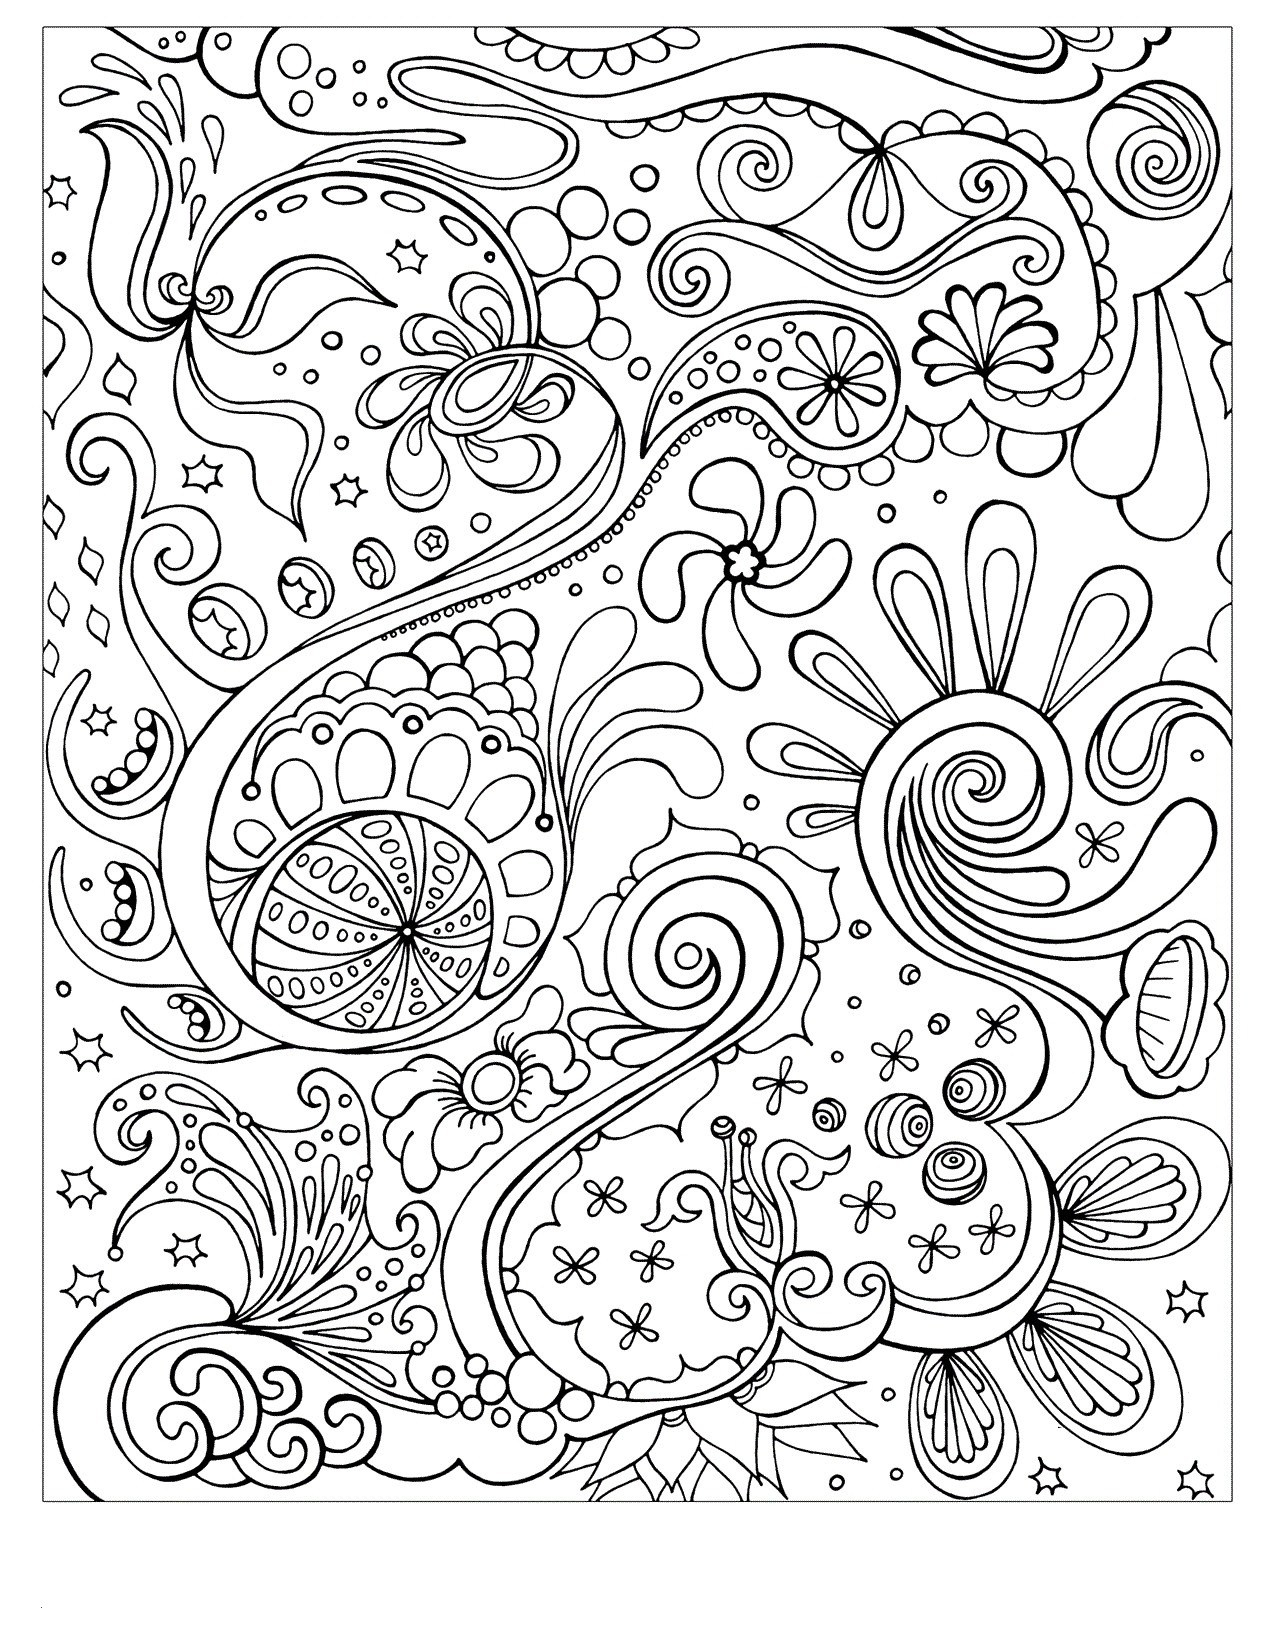 musical instruments coloring pages Collection-Free Music Coloring Pages Musical Instruments Coloring Pages 21csb 4-m